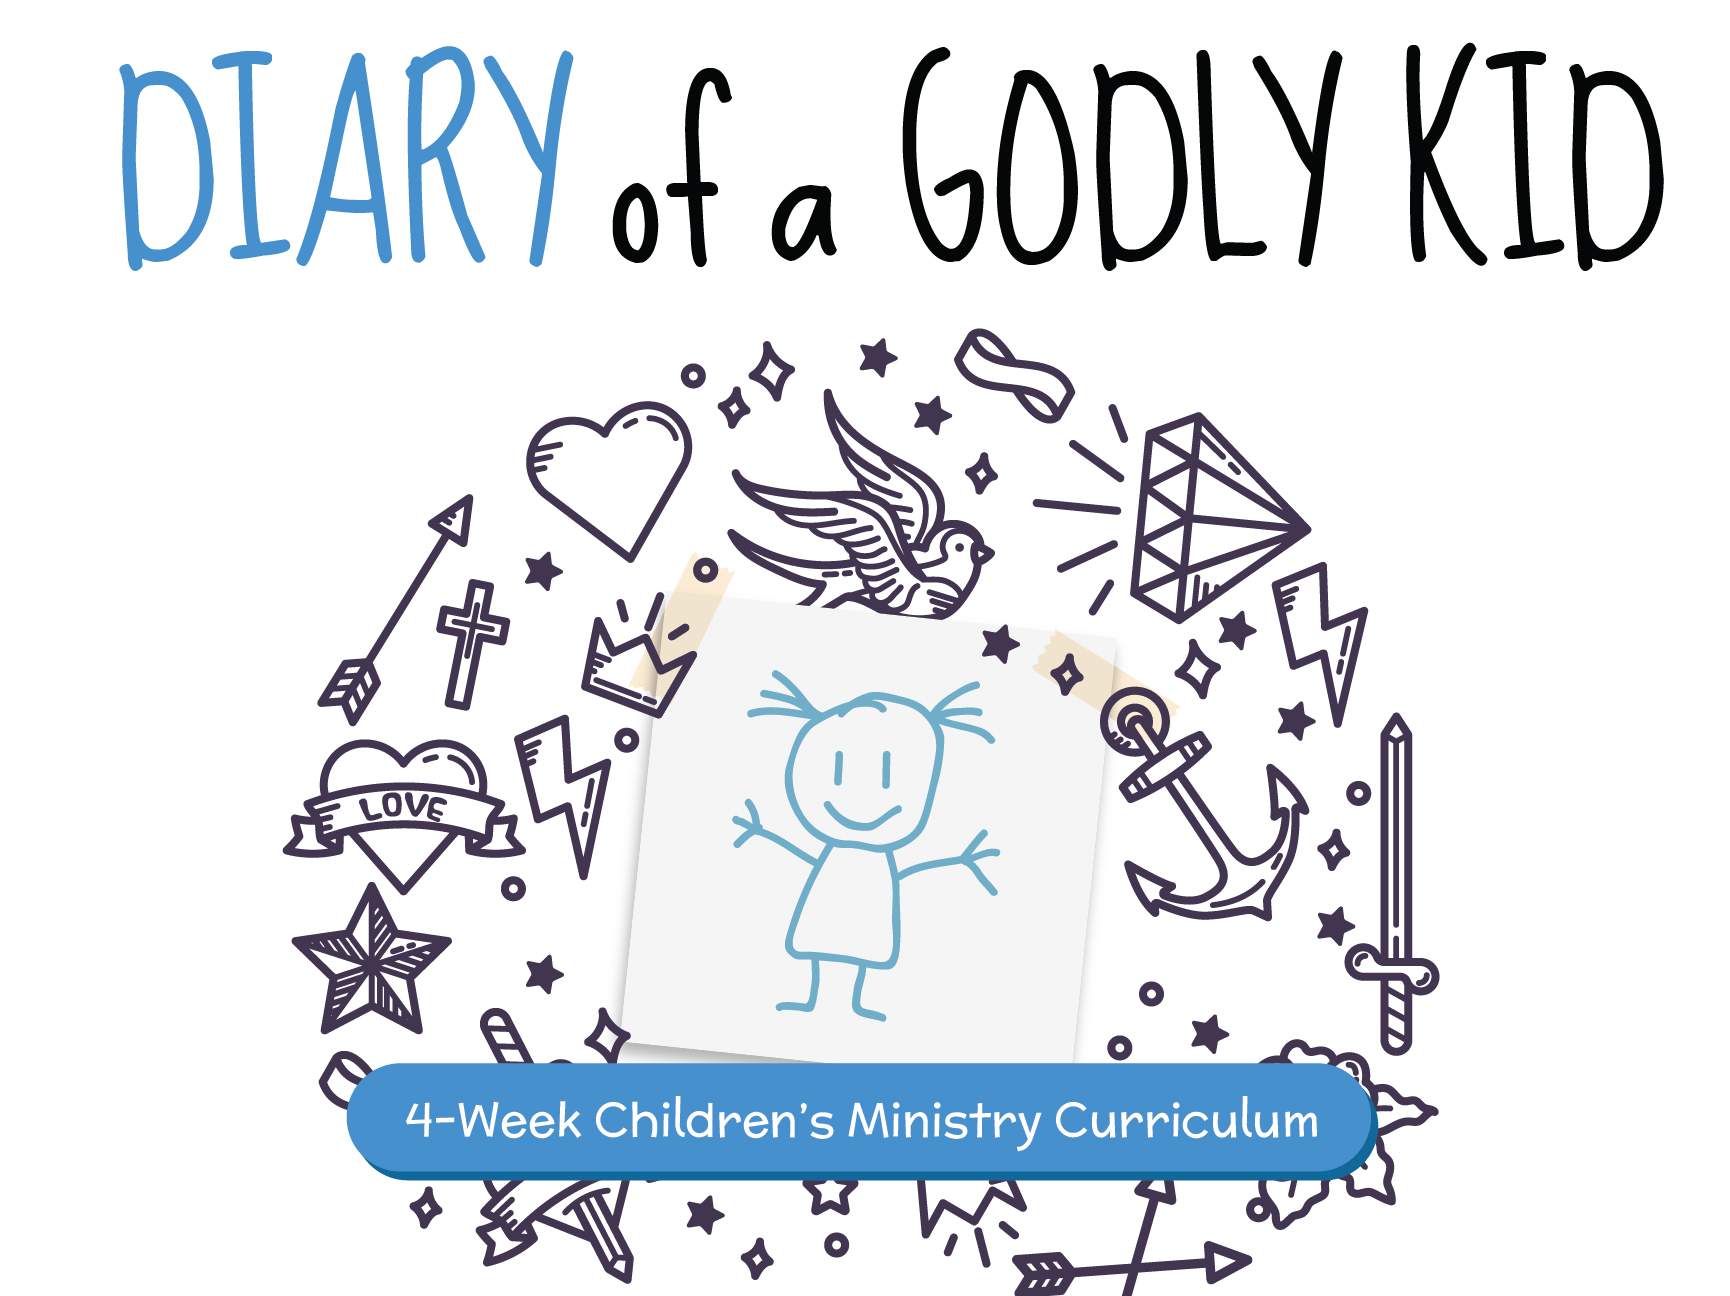 DIARY OF A GODLY KID: 4-WEEK CURRICULUM